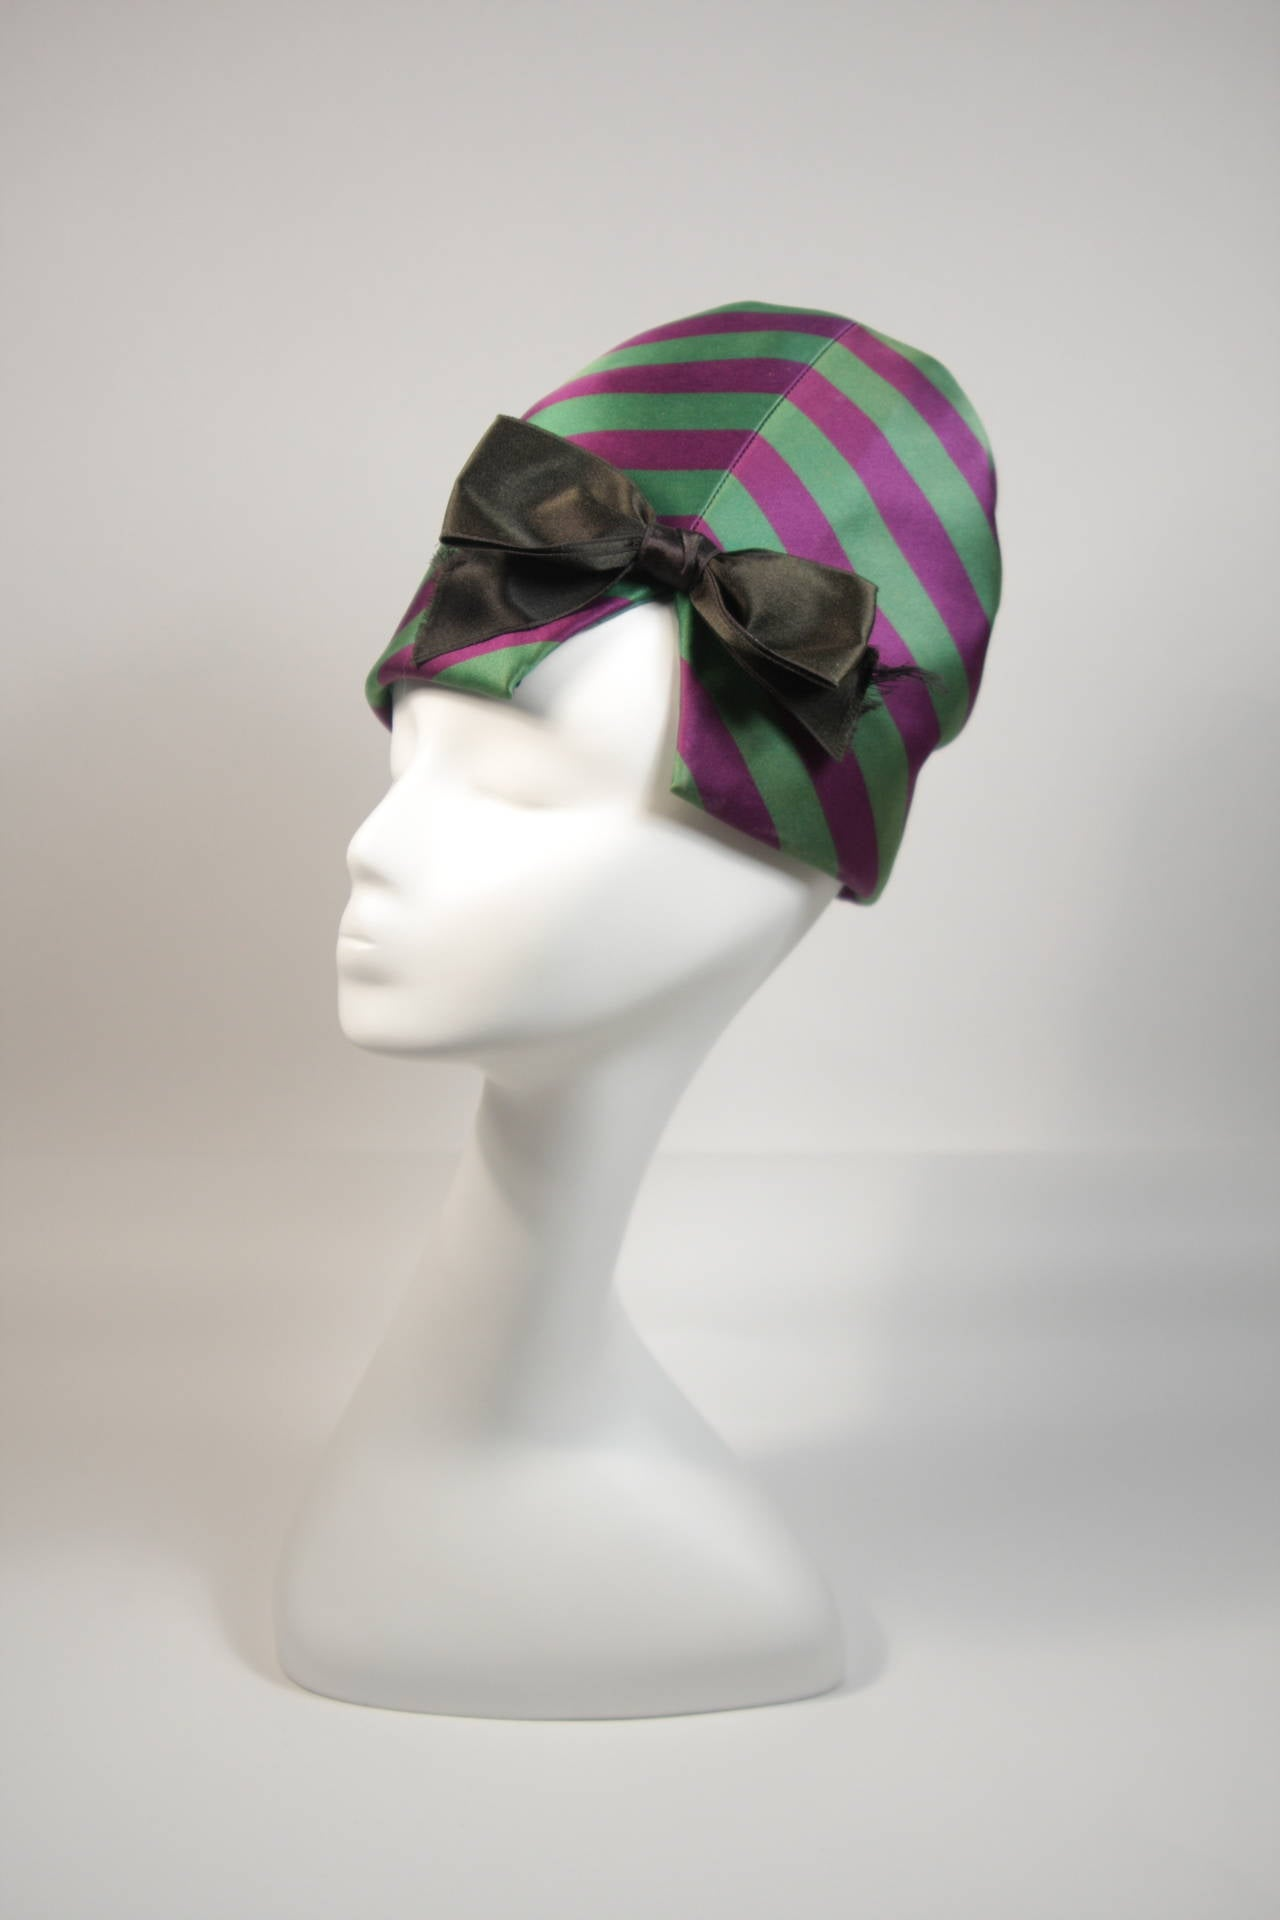 Yves Saint Laurent Rive Gauche Purple and Green Silk Rouched Hat with Bow 4